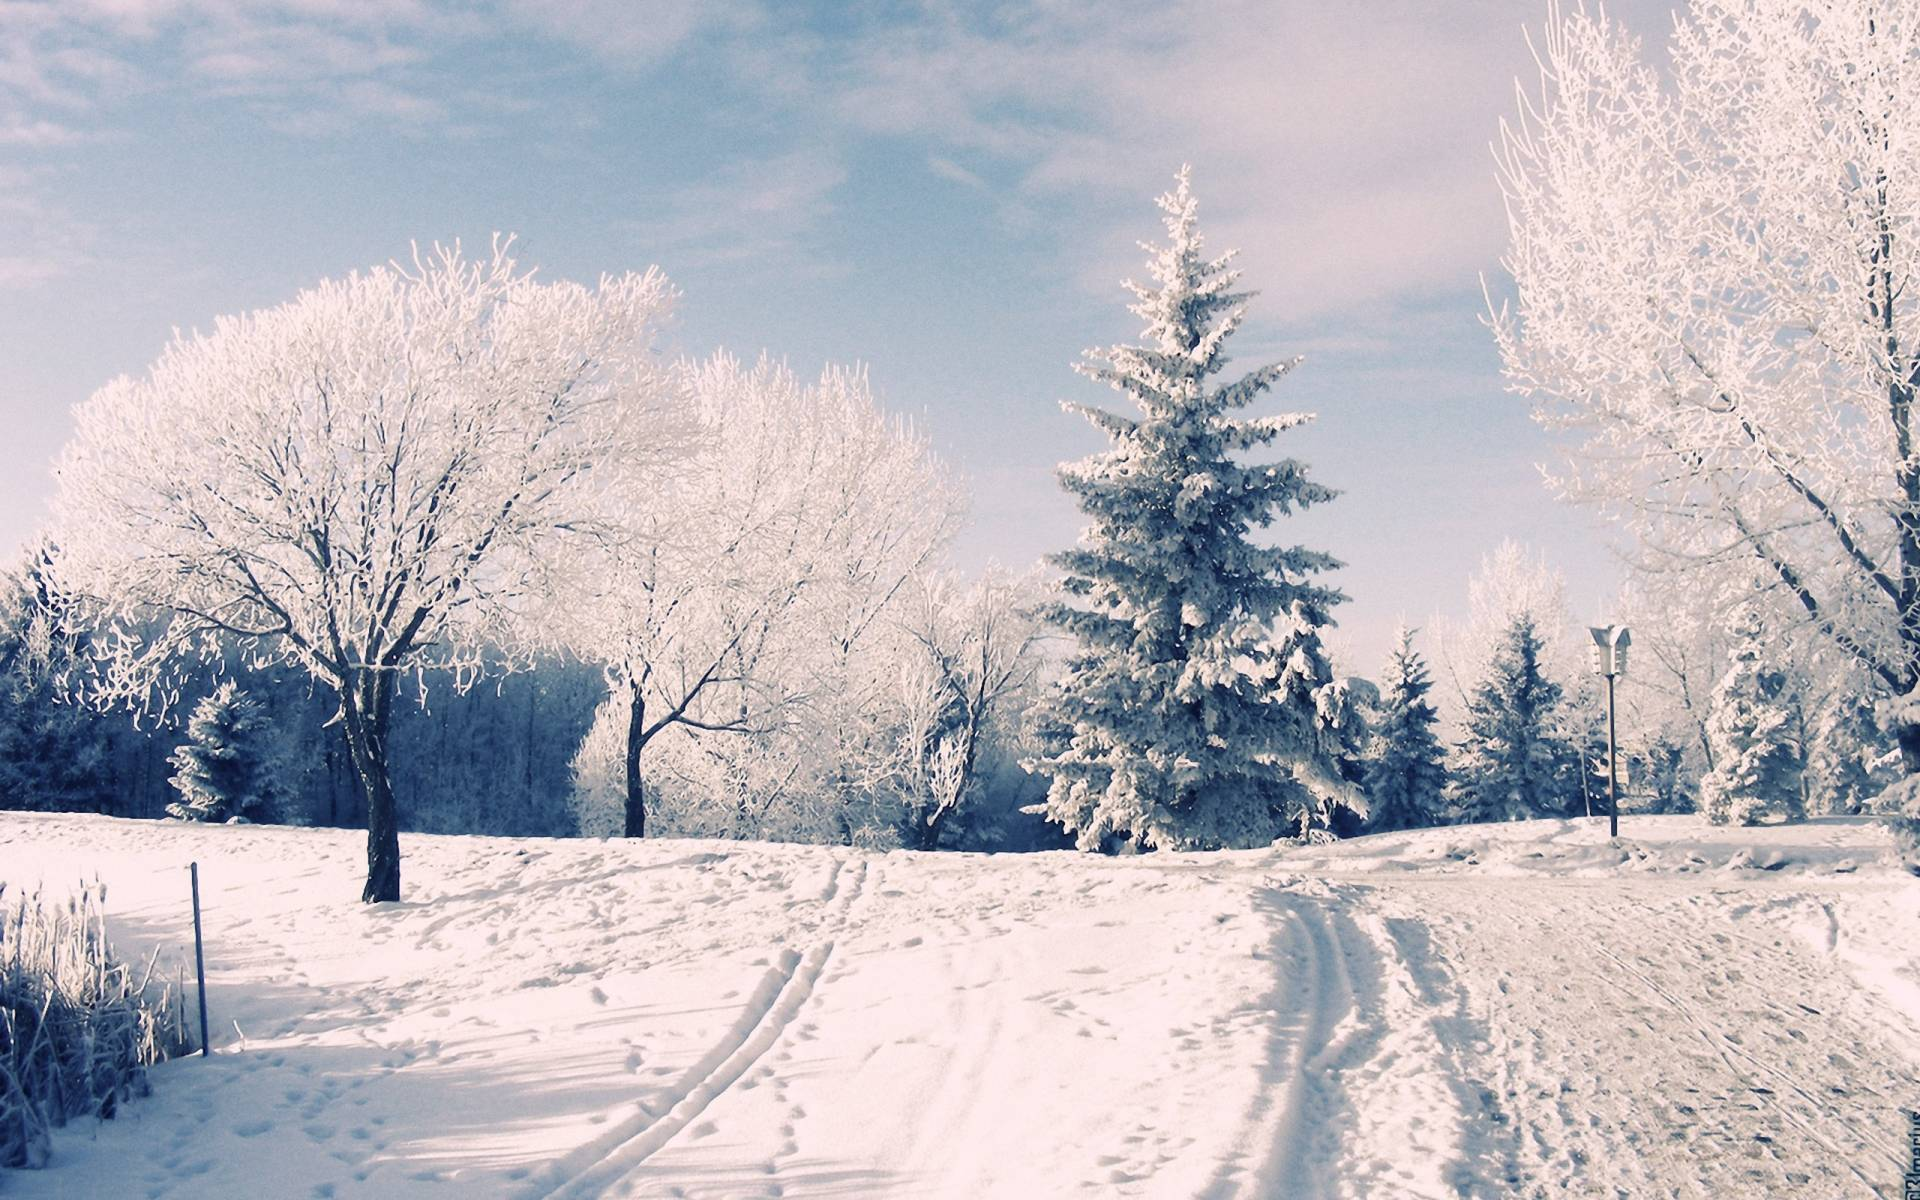 Desktop Winter Wallpaper Backgrounds Fitrinis Wallpaper 1920x1200